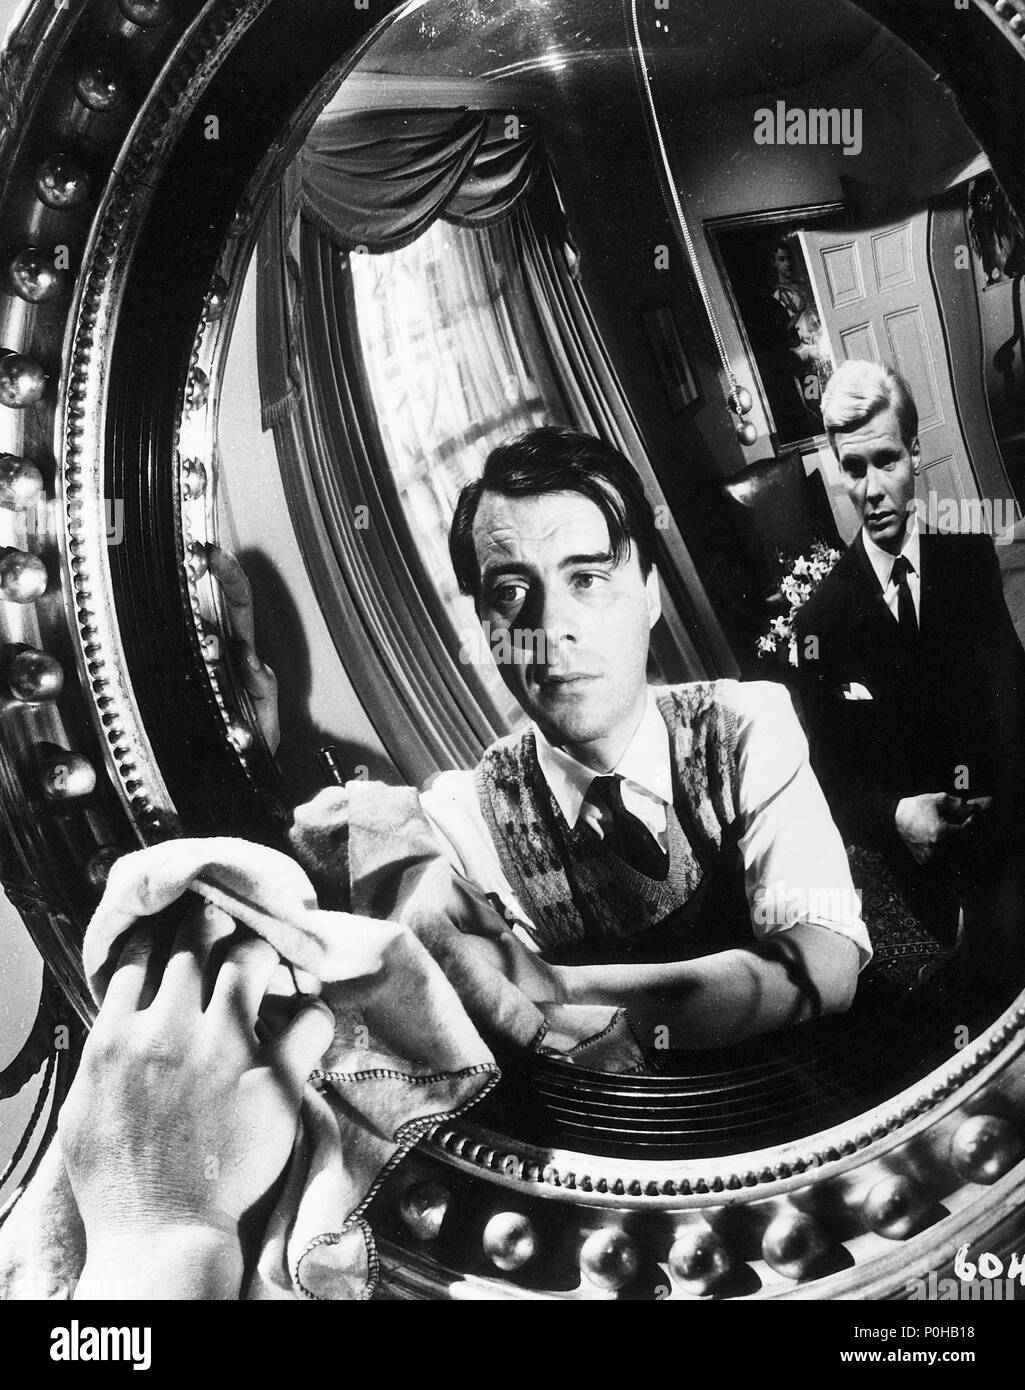 Original Film Title: THE SERVANT.  English Title: THE SERVANT.  Film Director: JOSEPH LOSEY.  Year: 1963.  Stars: DIRK BOGARDE; JAMES FOX. Credit: ASSOCIATED BRITISH PICTURES / Album - Stock Image